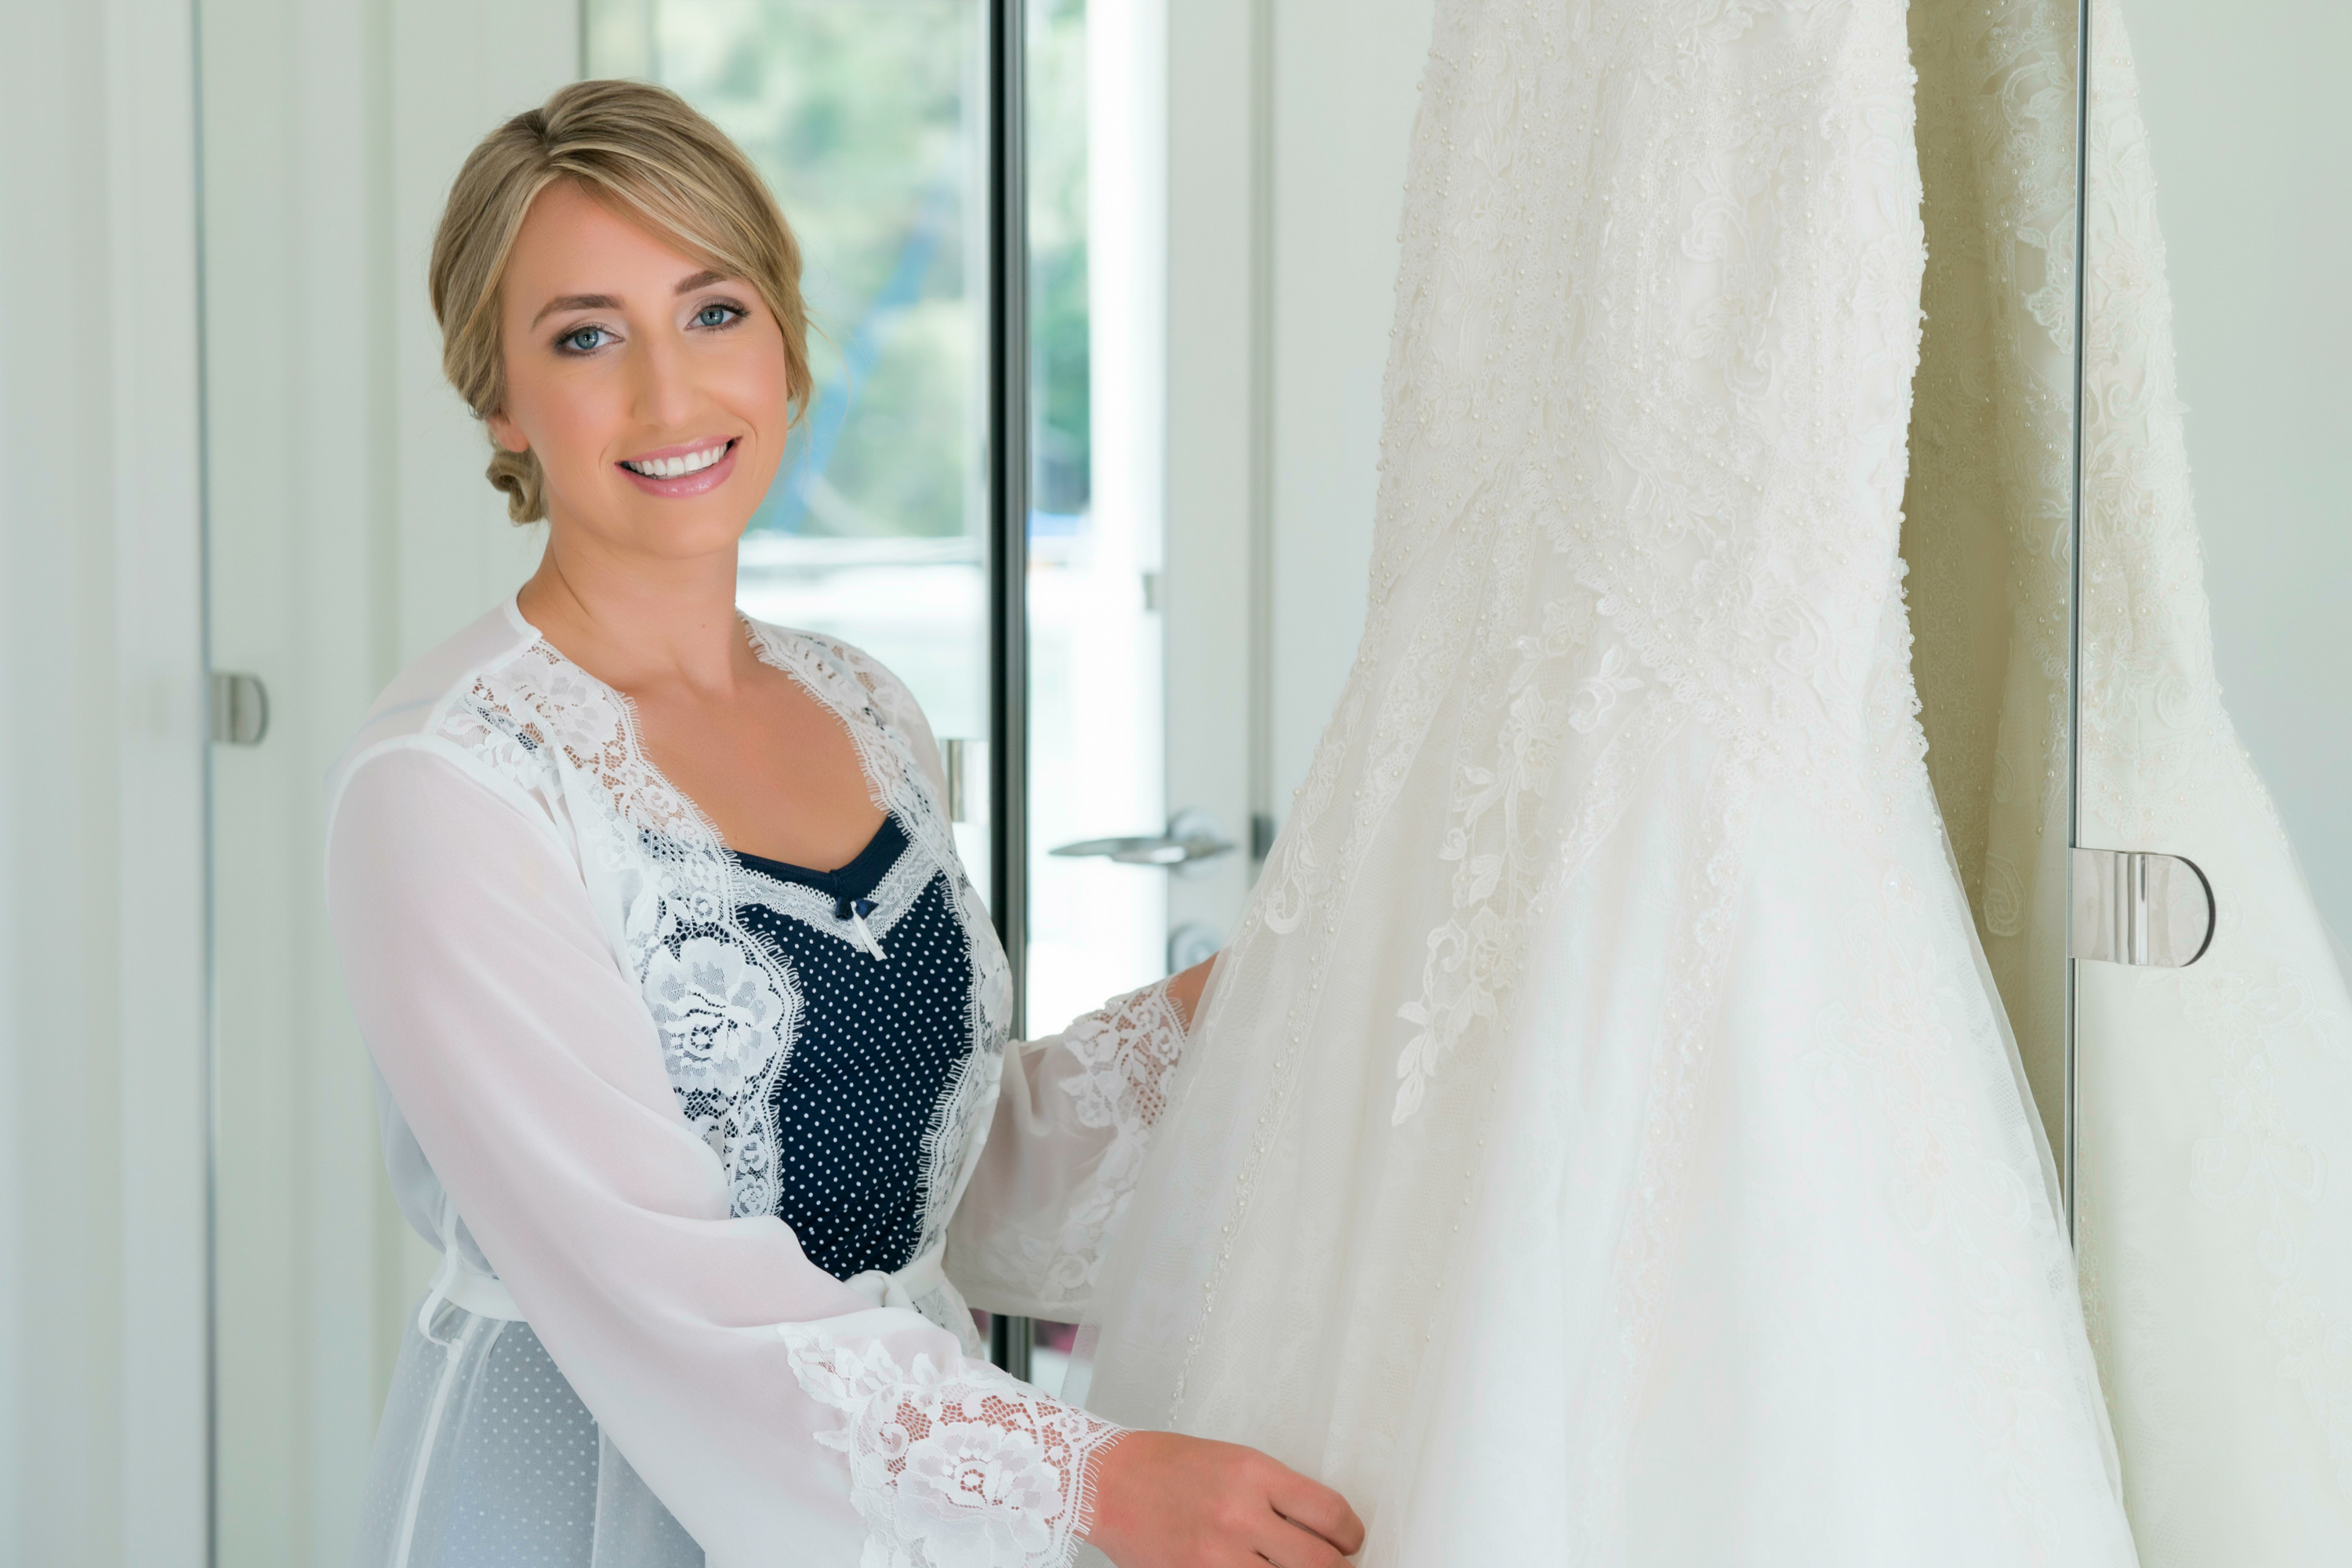 Bride and her wedding dress